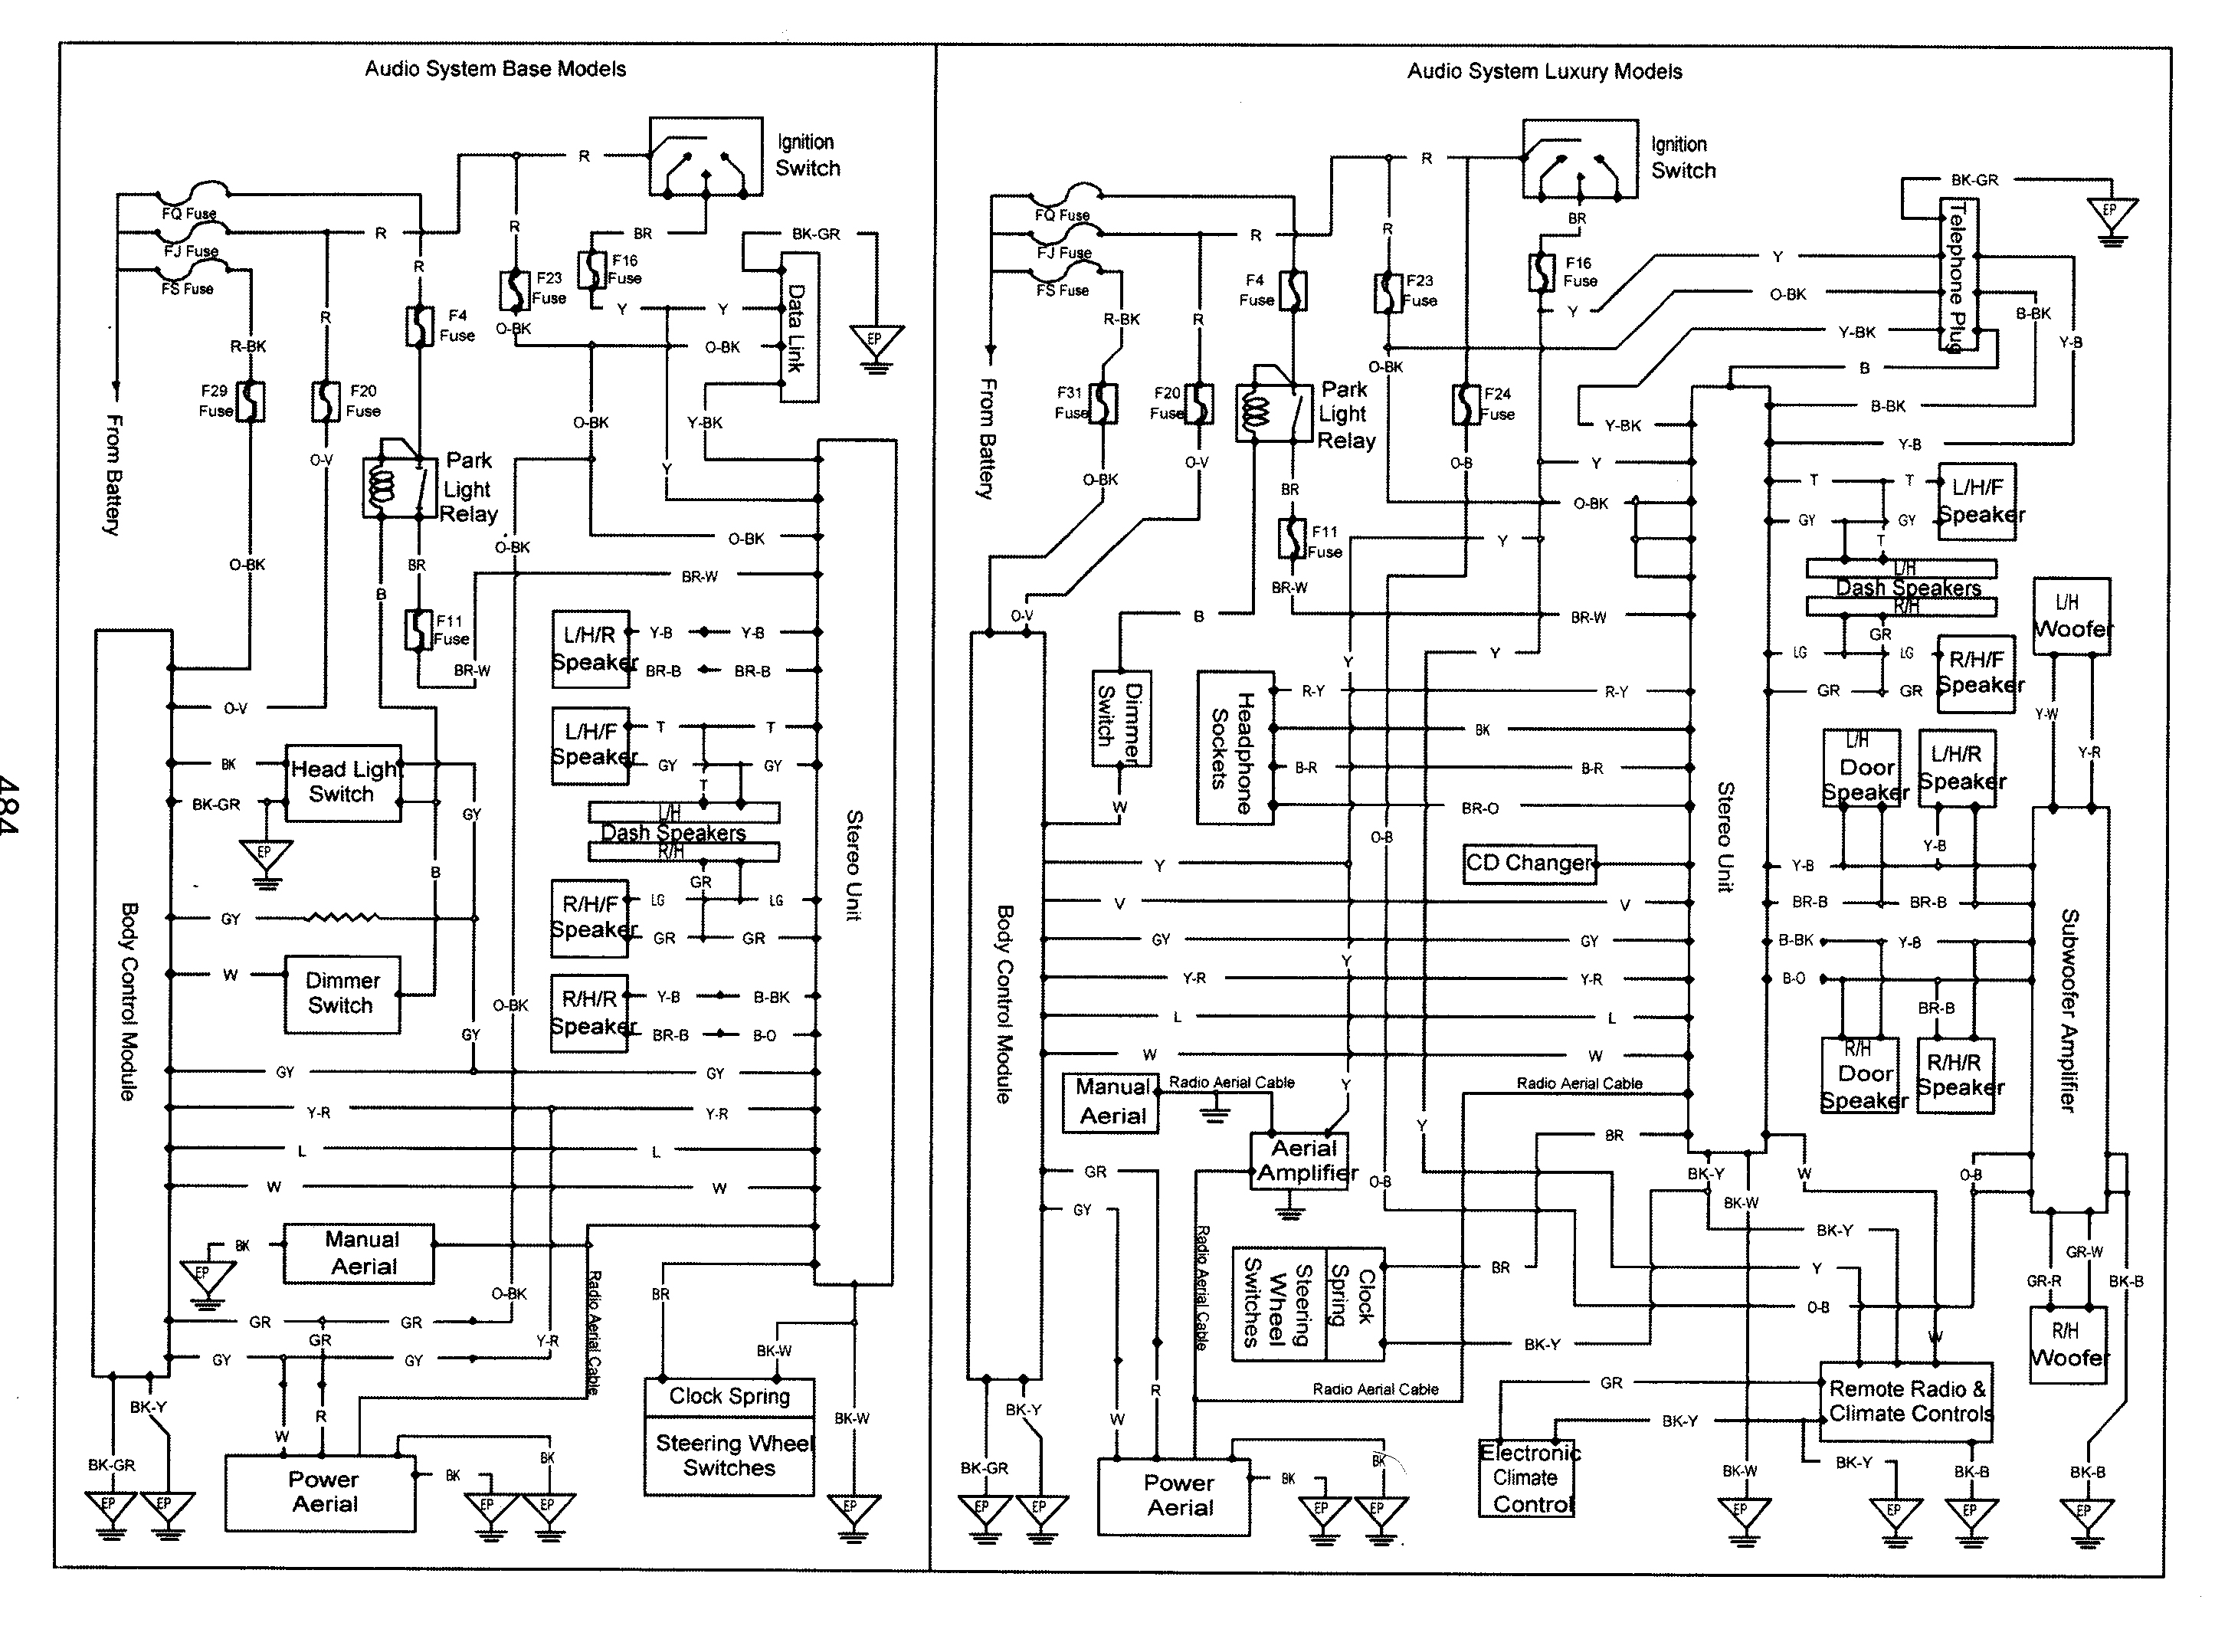 Vs V8 Commodore Ecu Wiring Diagram Viewtechnews